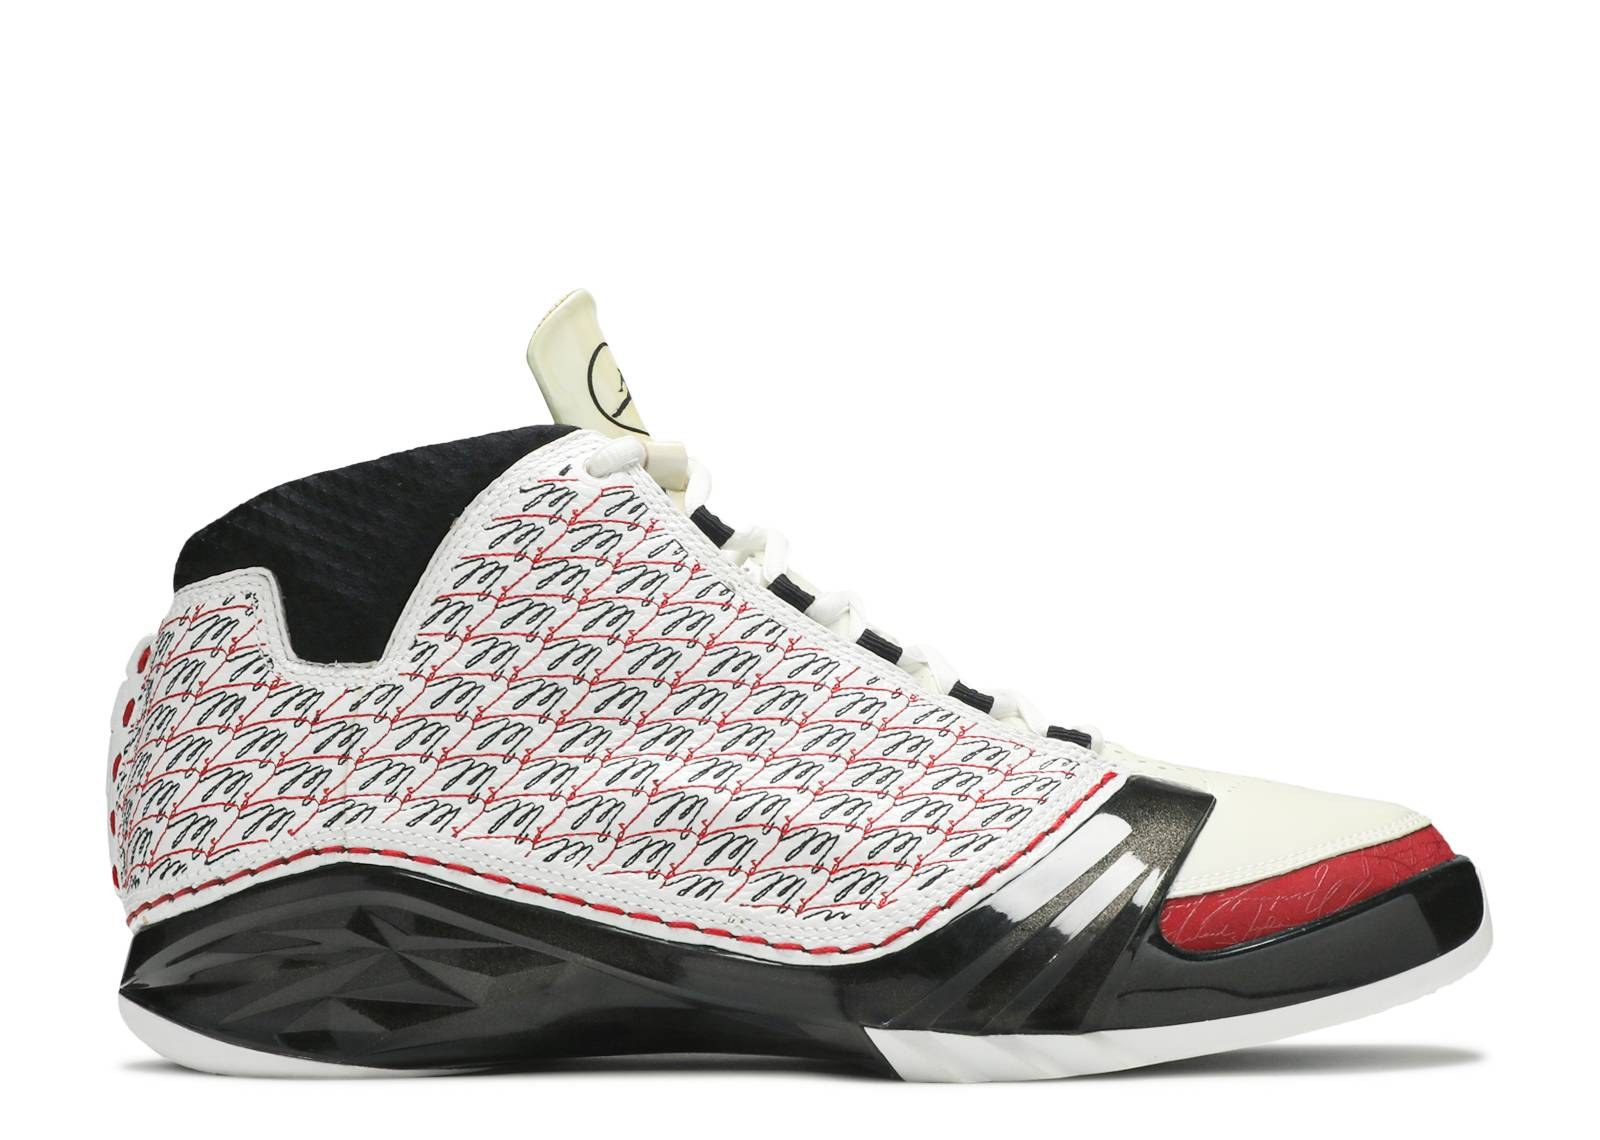 03c8dafb71bc Air Jordan 23 - Air Jordan - 318376 101 - white black-varsity red ...